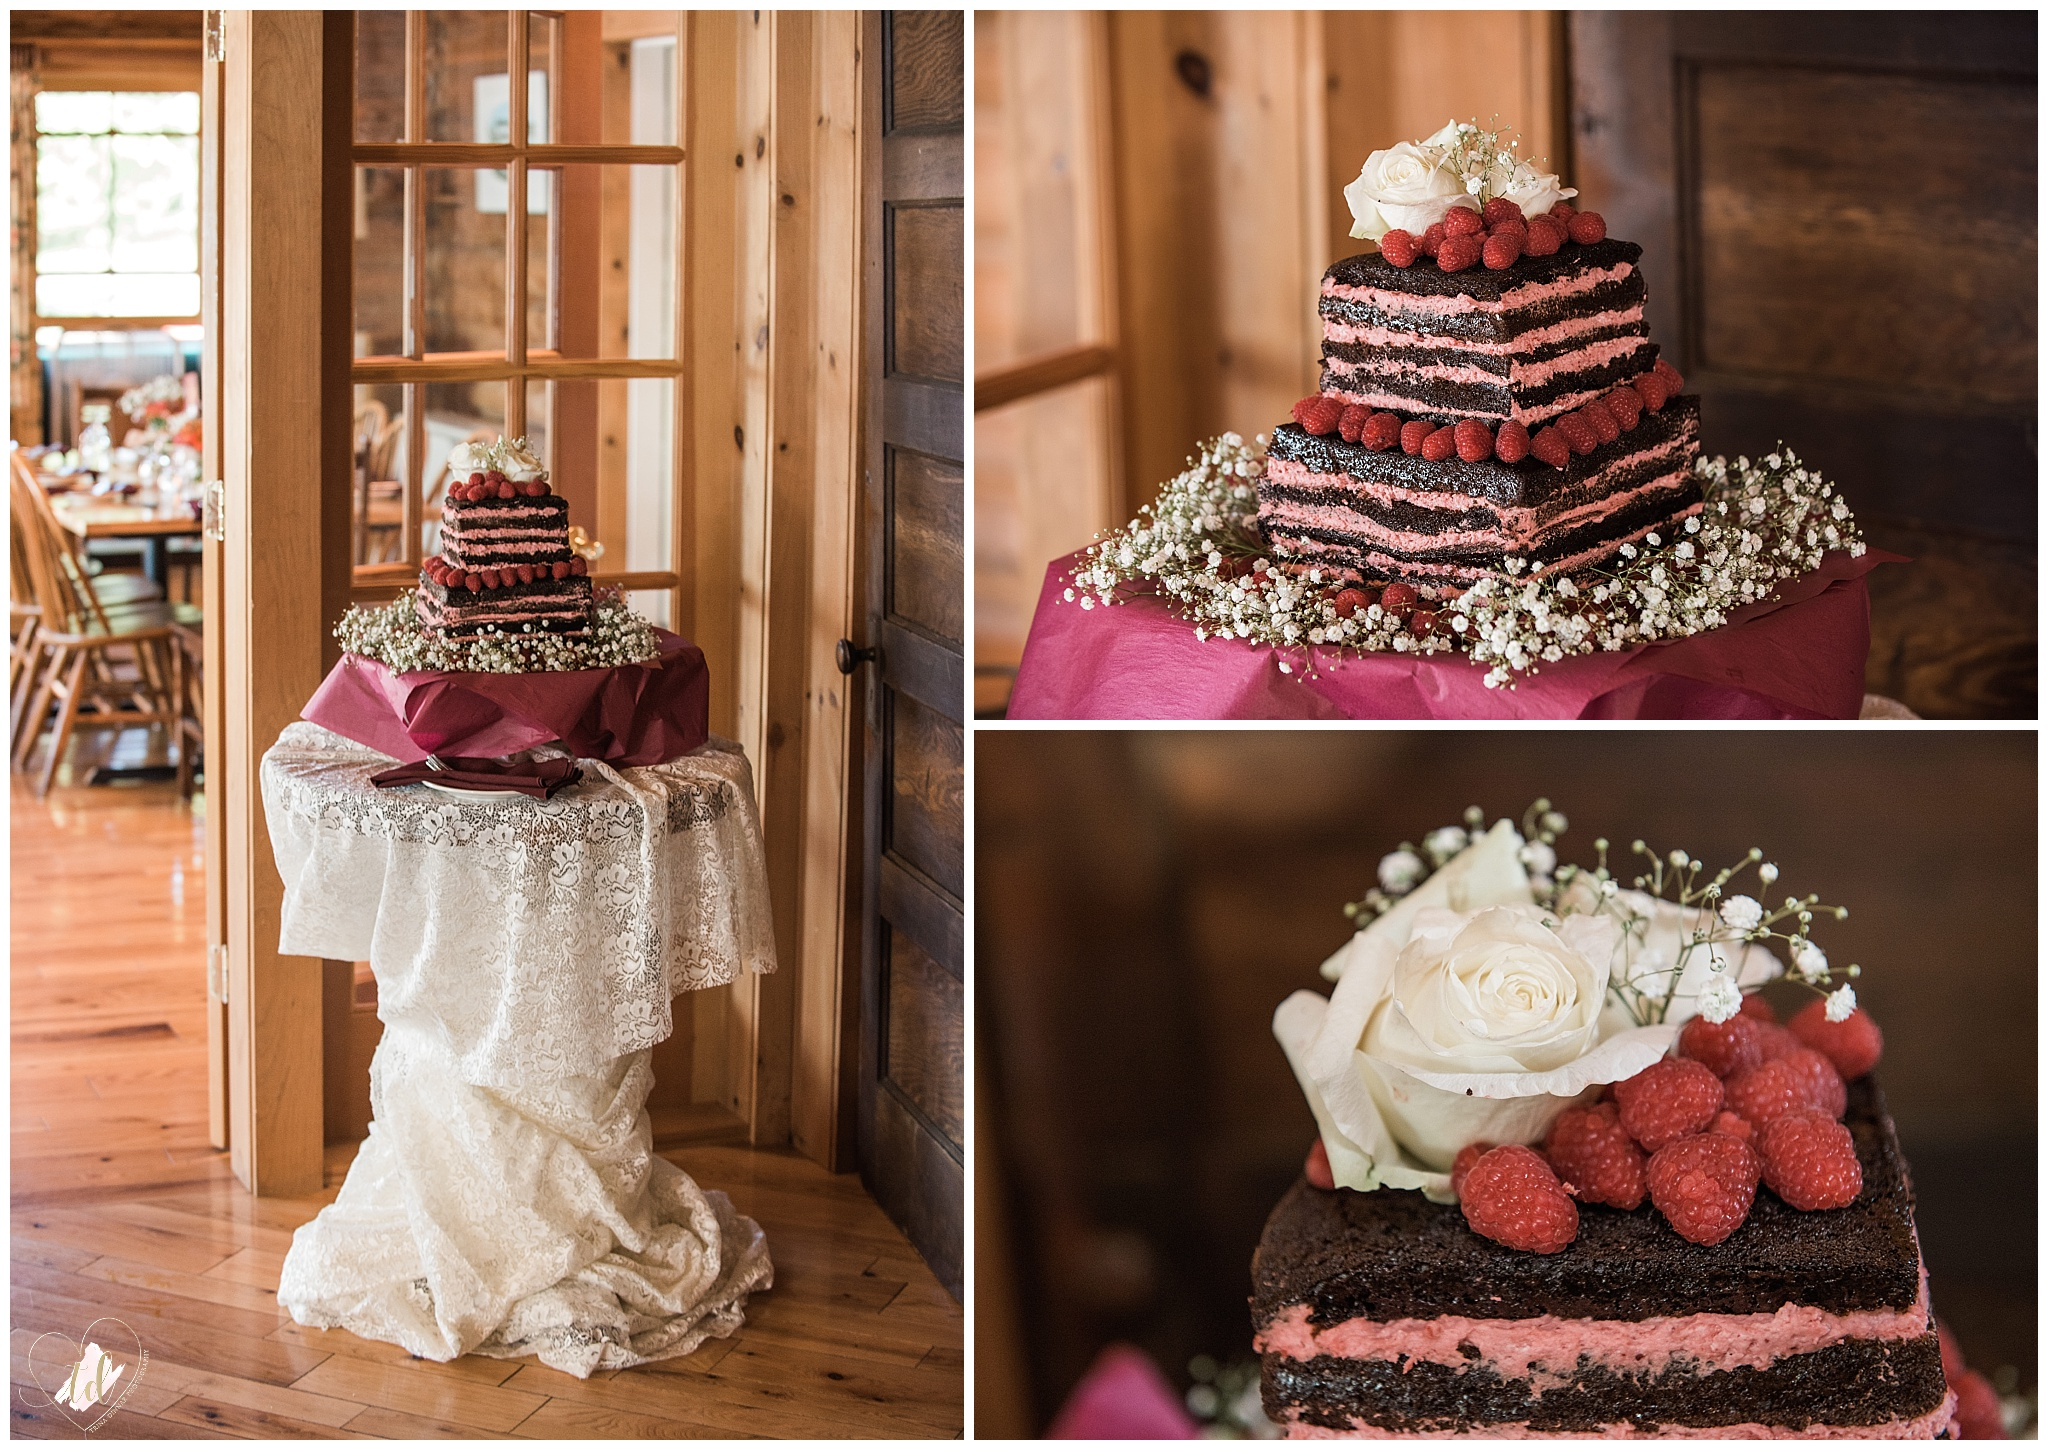 Maine Wedding Cake at Bald Mountain Camps Resort